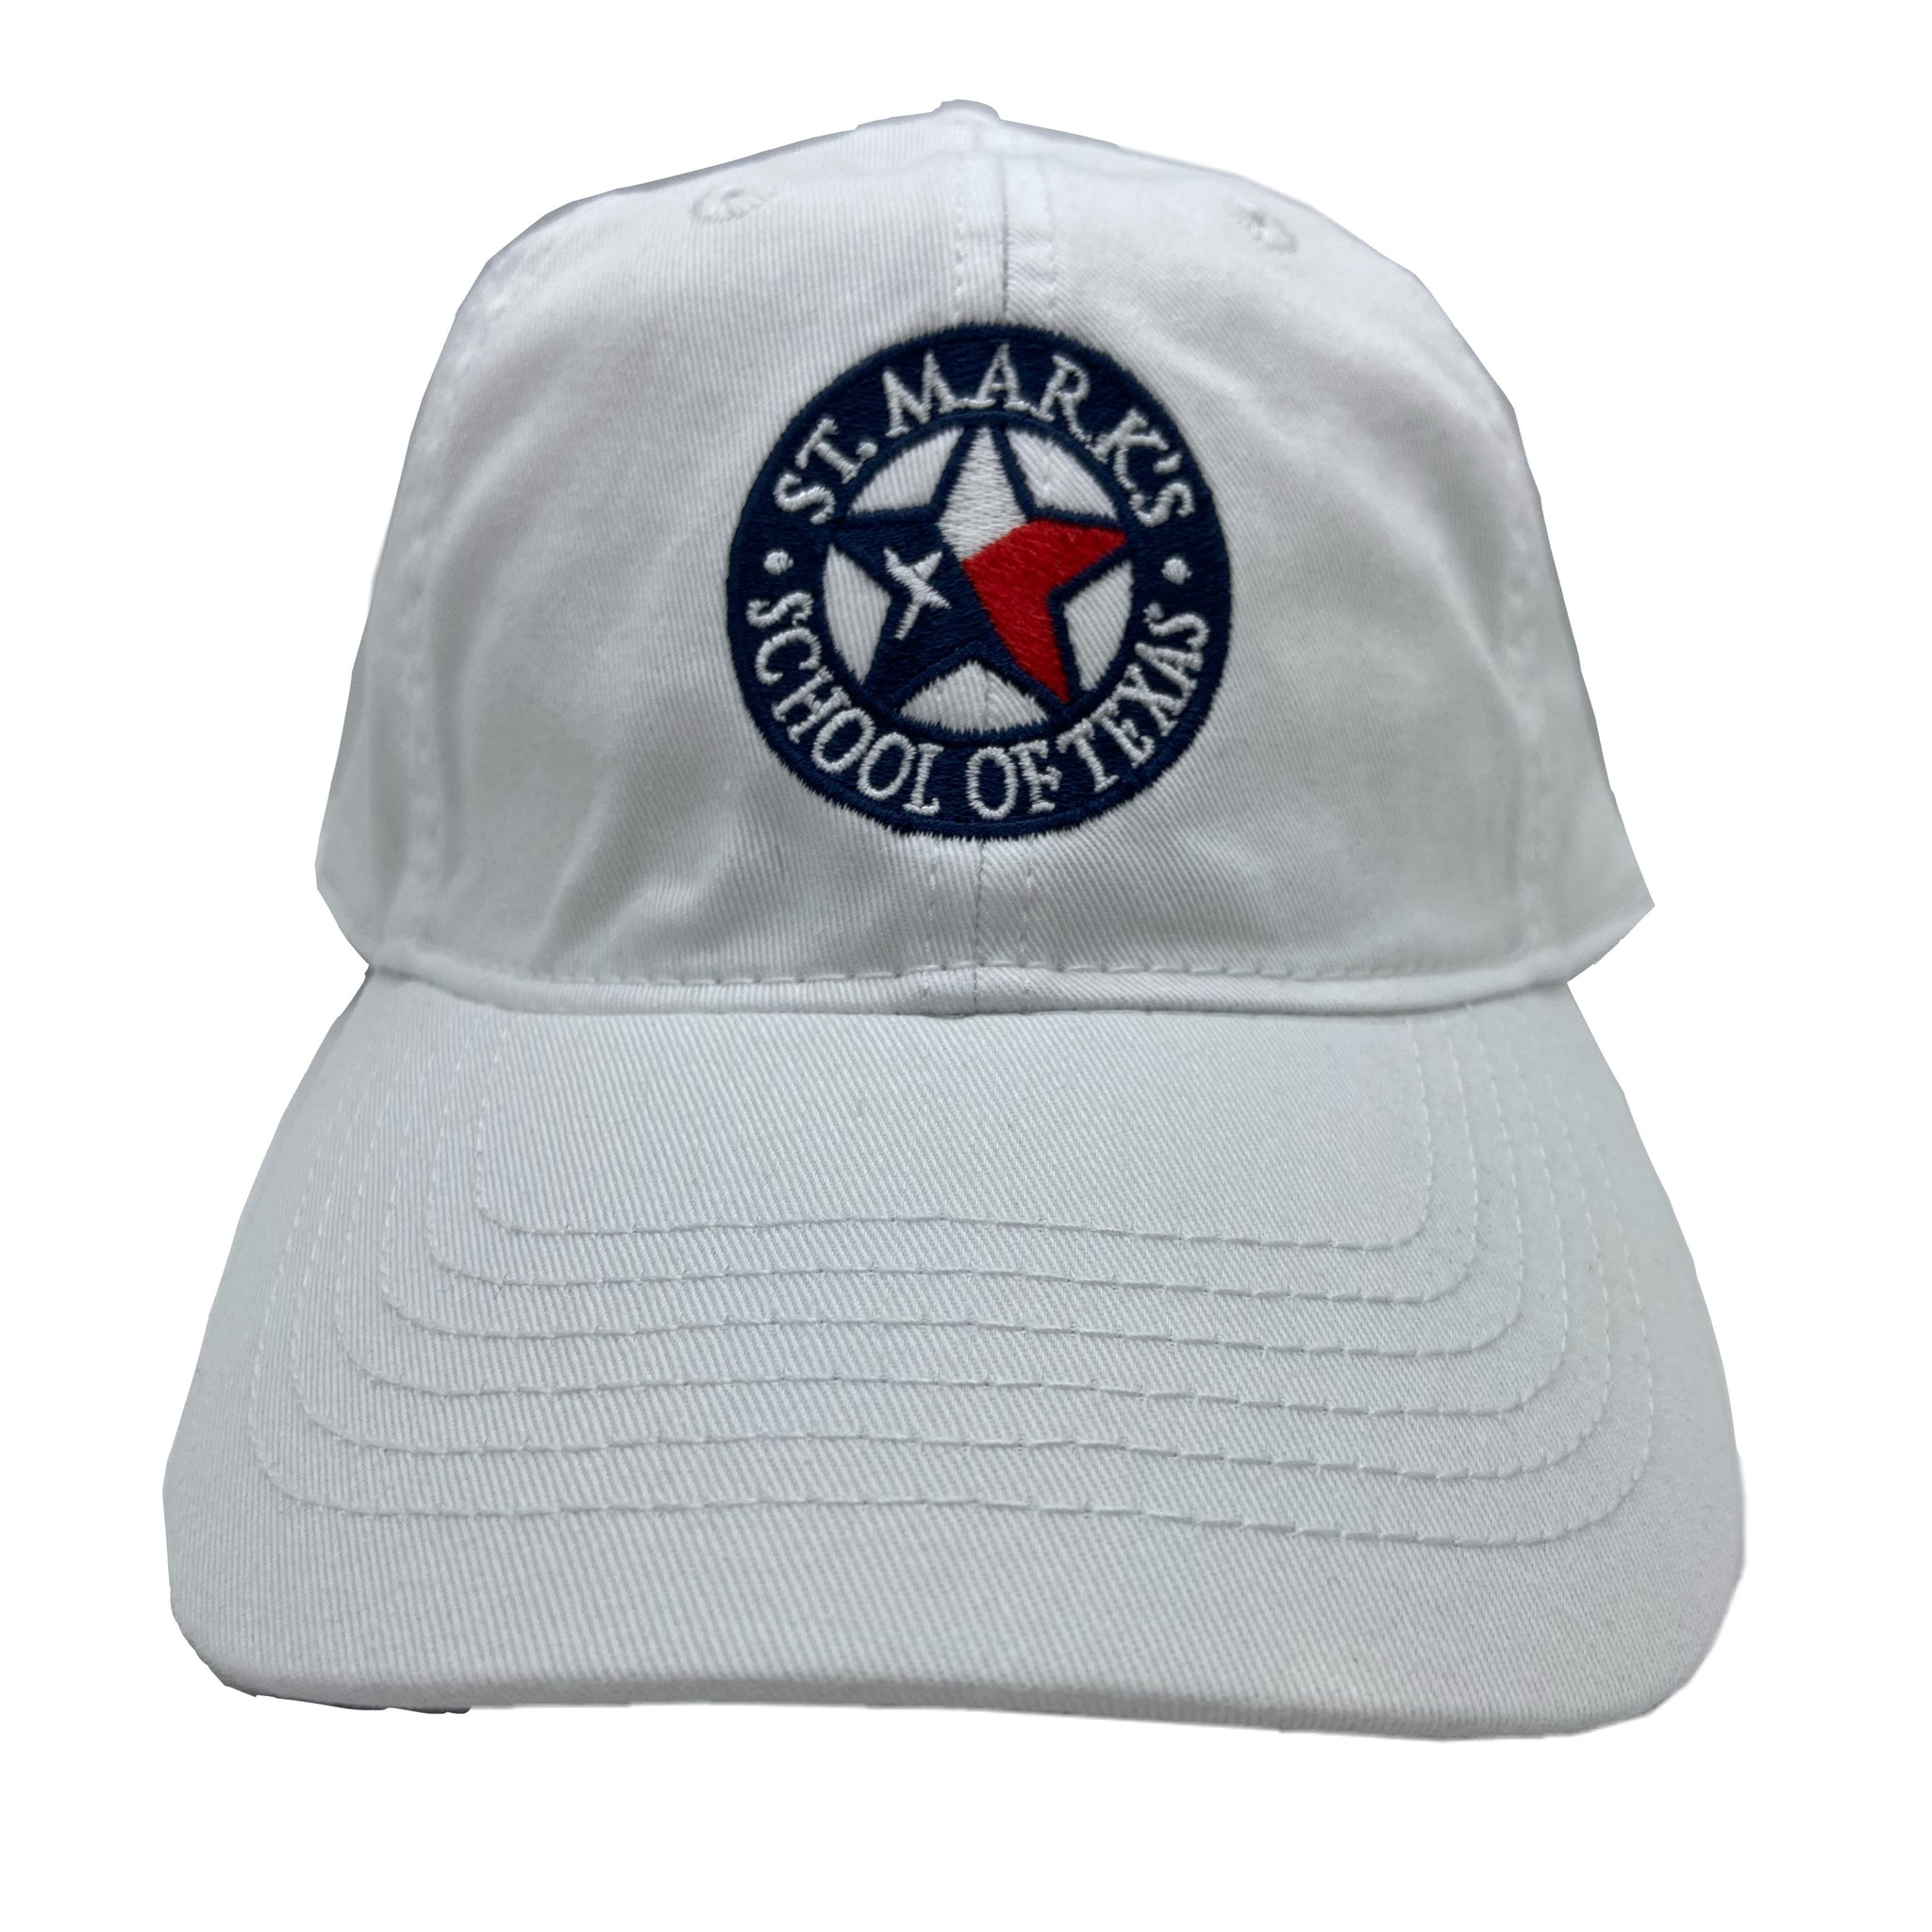 Cotton Hat with Texas Star